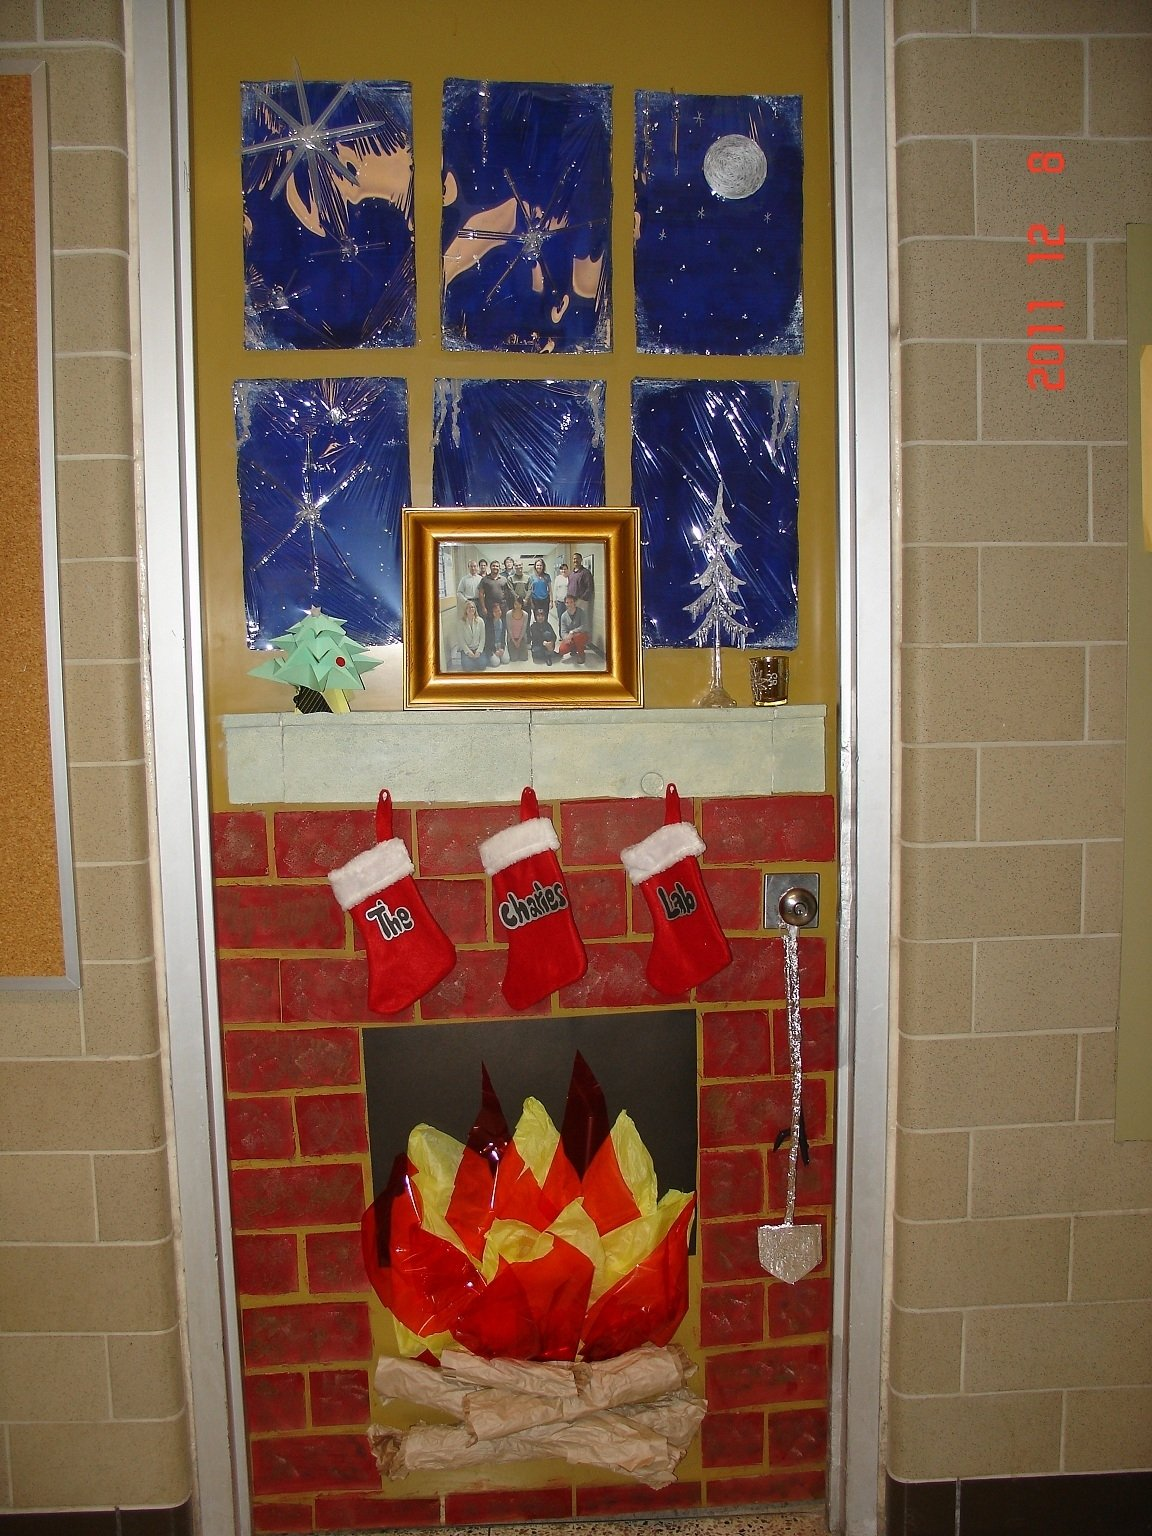 10 Most Recommended Christmas Door Decorating Contest Ideas uw biology graduate student association christmas door decorating